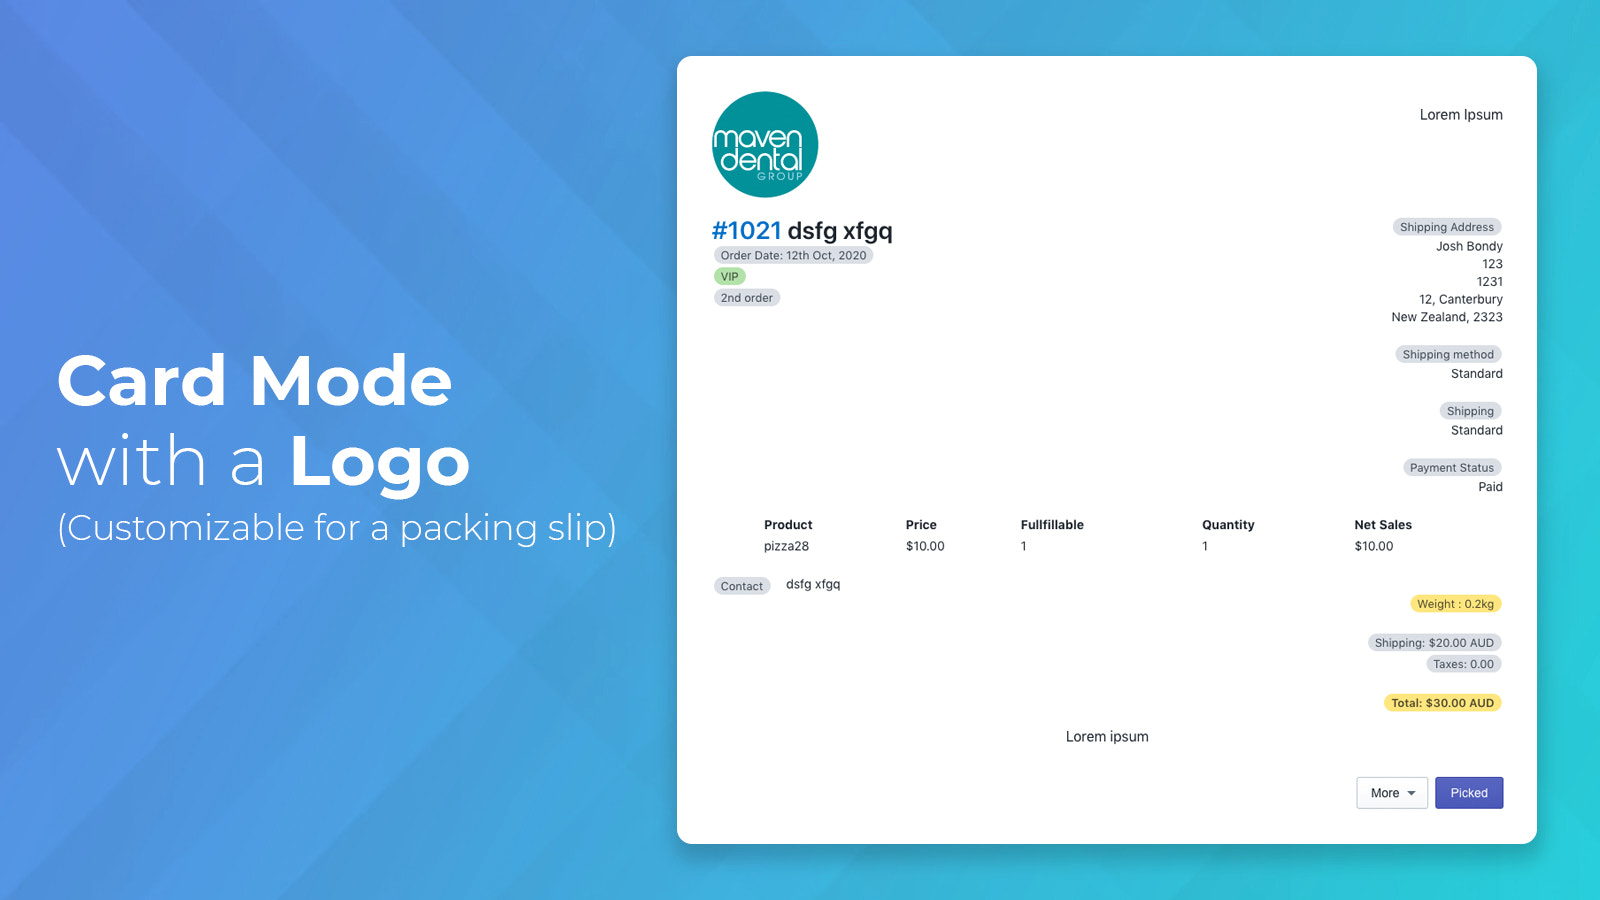 Card mode with a logo and all information for a packing slip